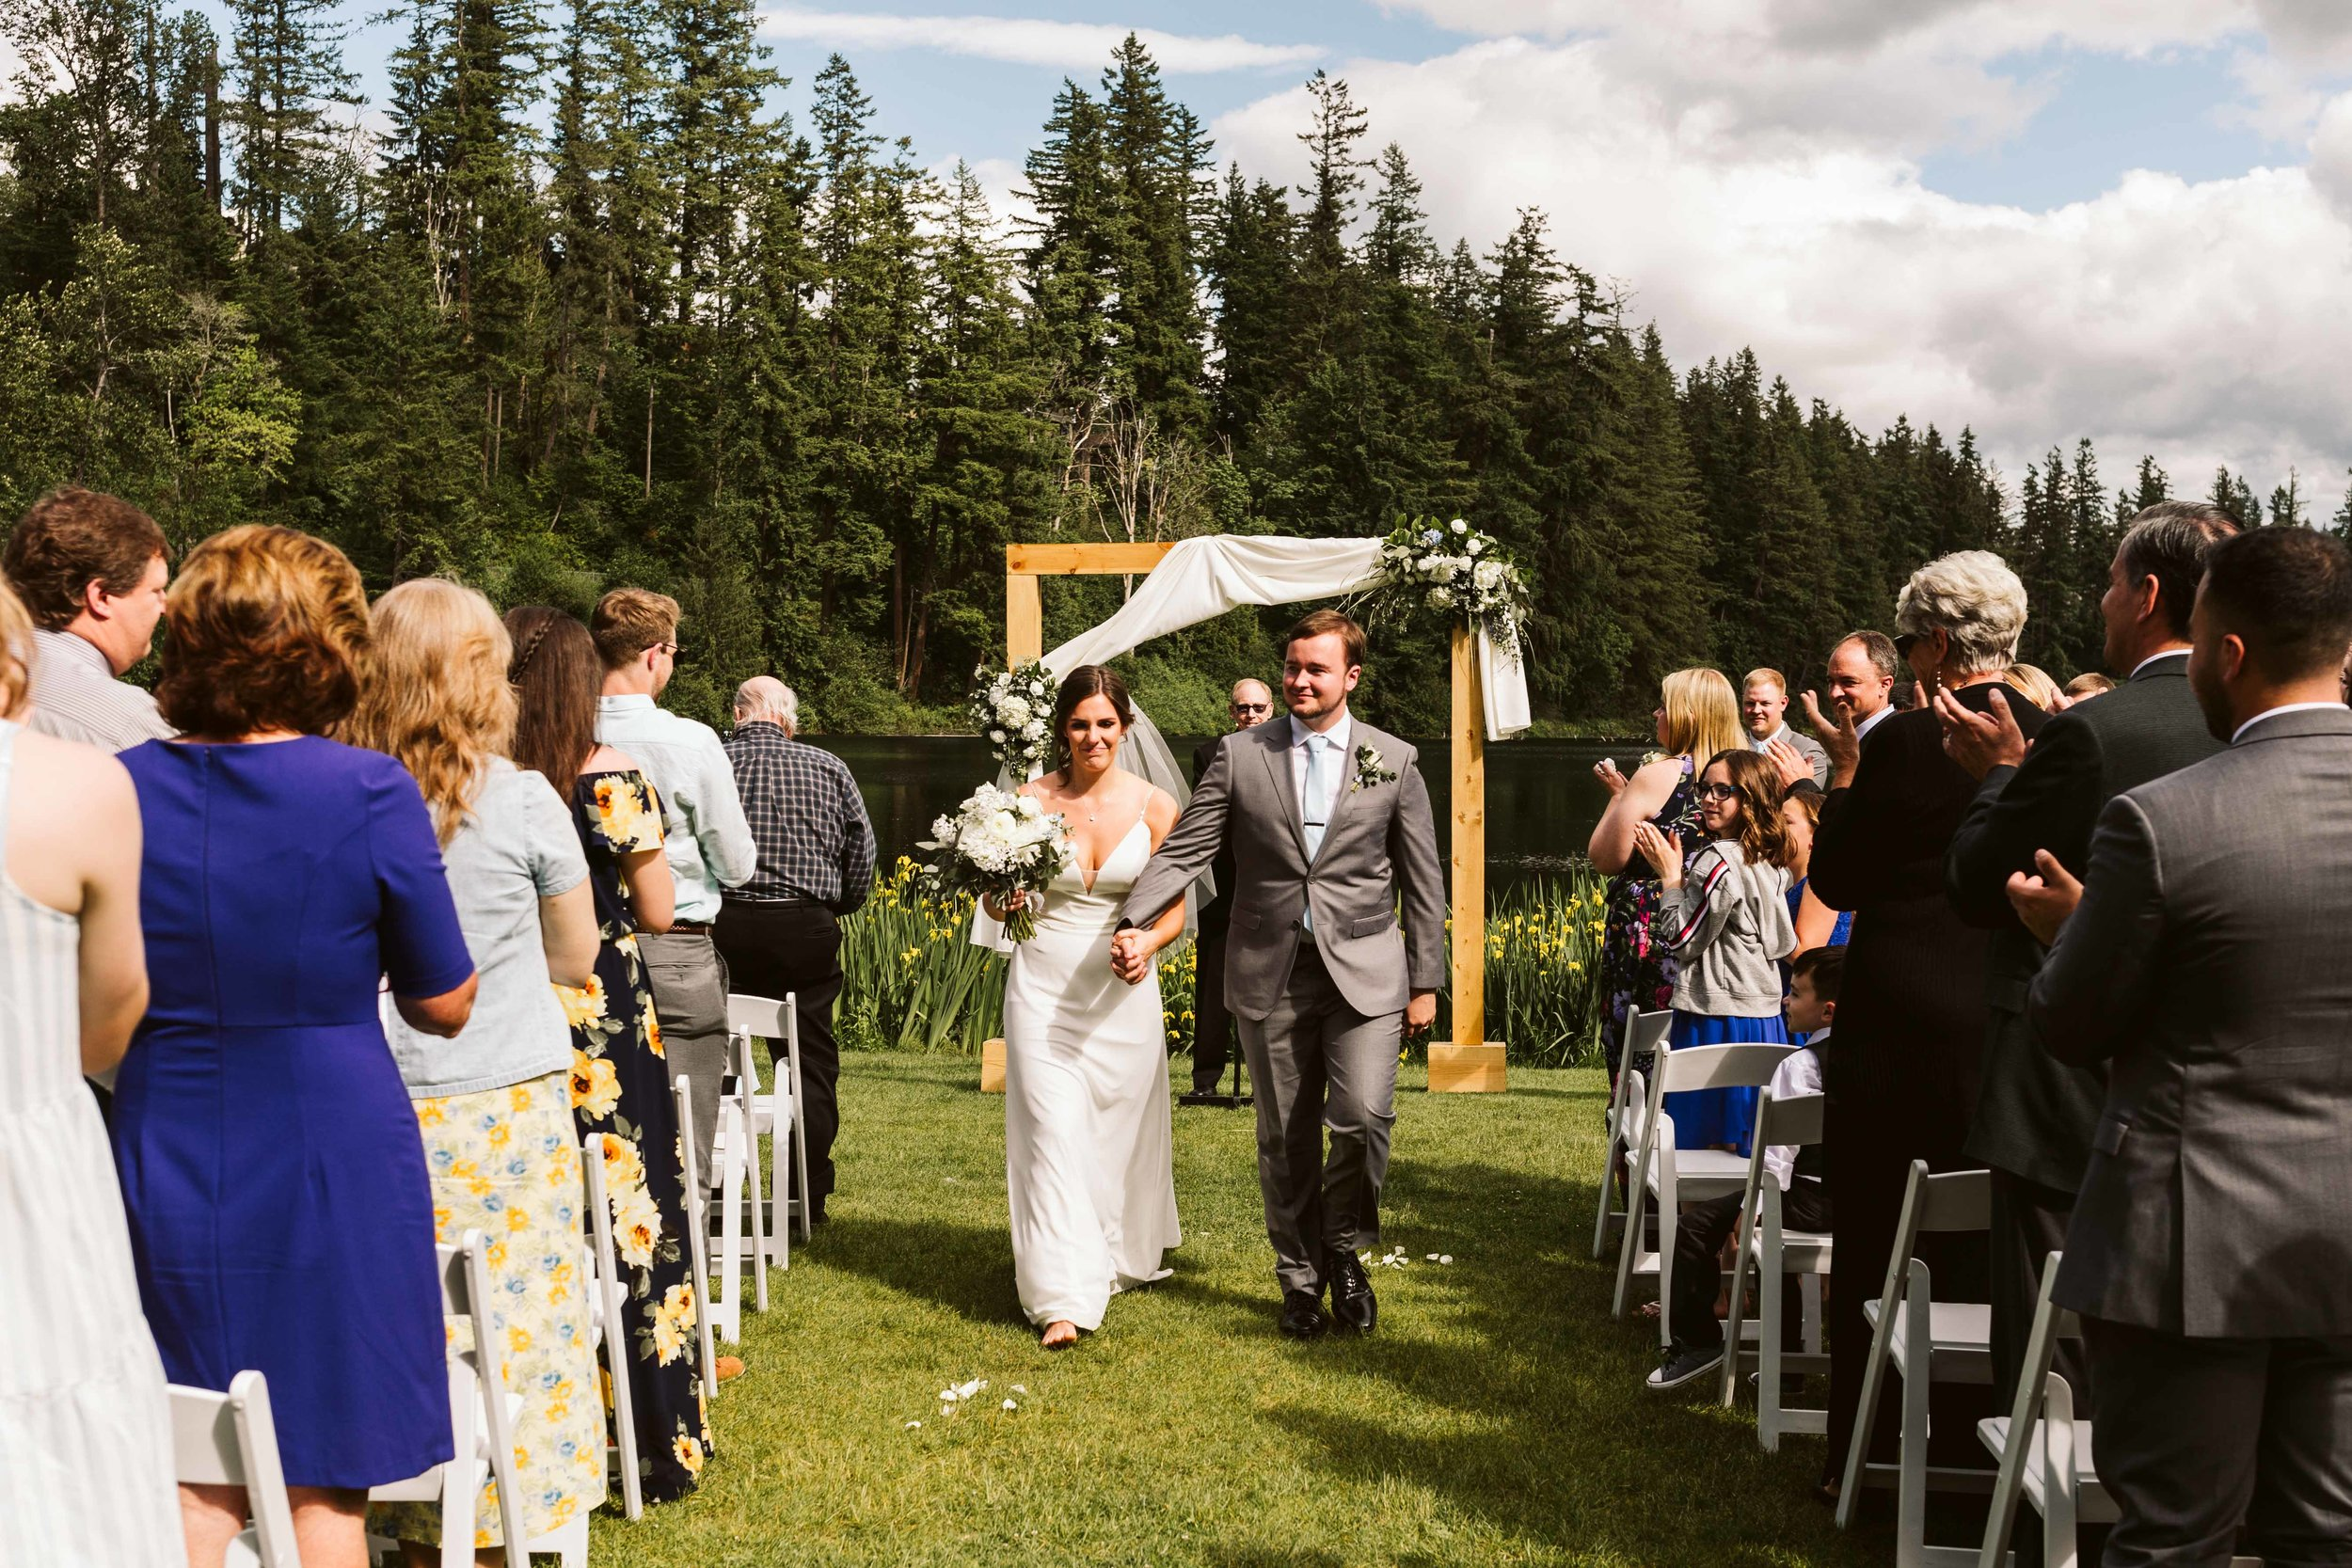 lake-wilderness-lodge-wedding-46.jpg